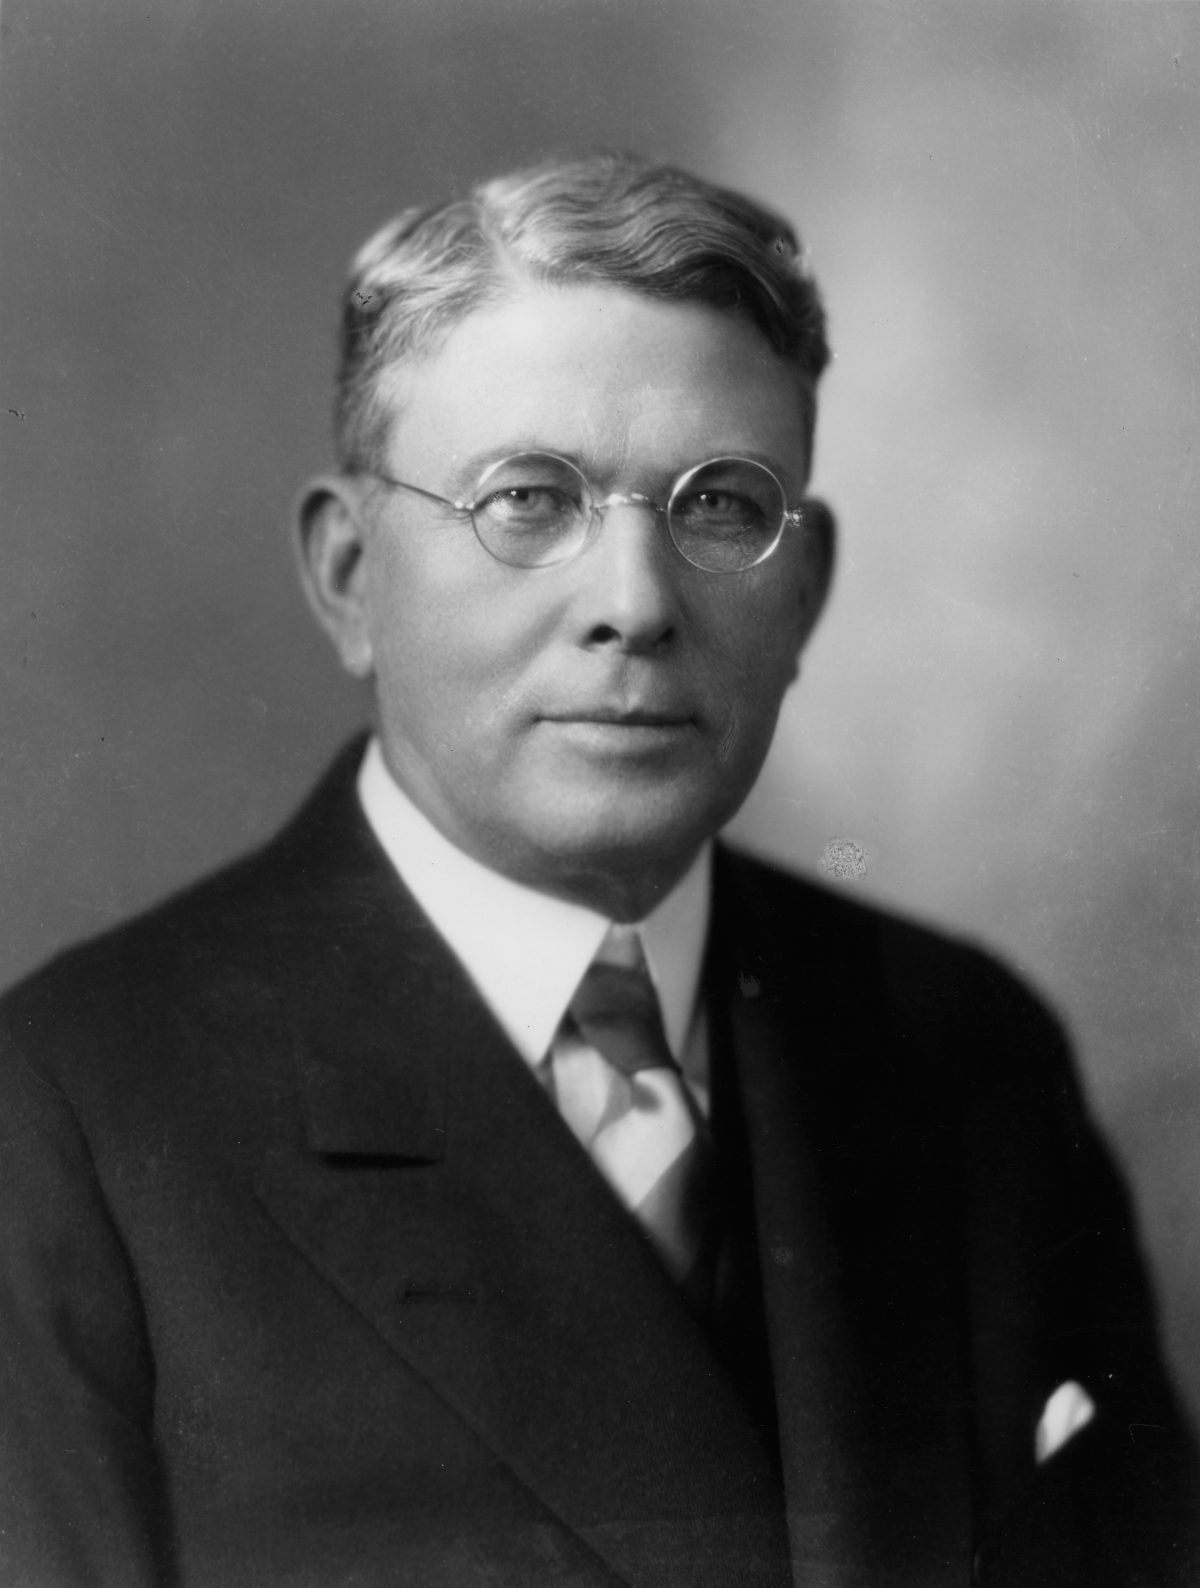 William E. Carson